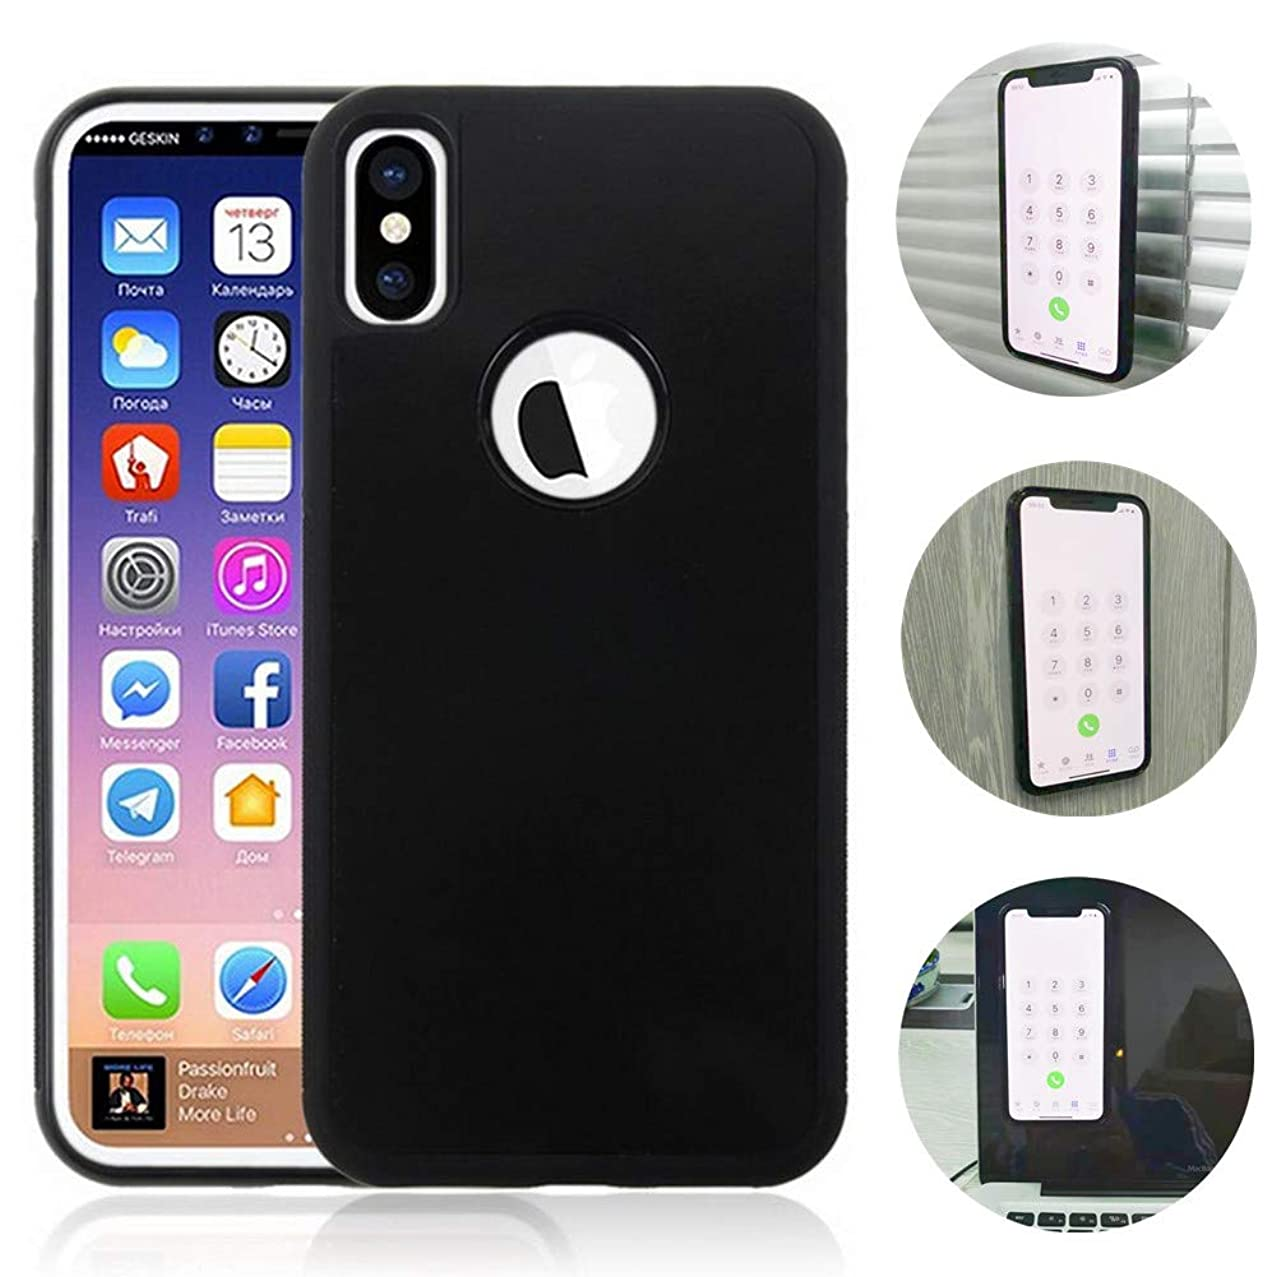 Anti Gravity Case for iPhone X iPhone Xs, Nano-Absorption Stick to Smooth Flat Surface Such as Glass, Wood, Marble, Whiteboards (iPhone X/Xs)